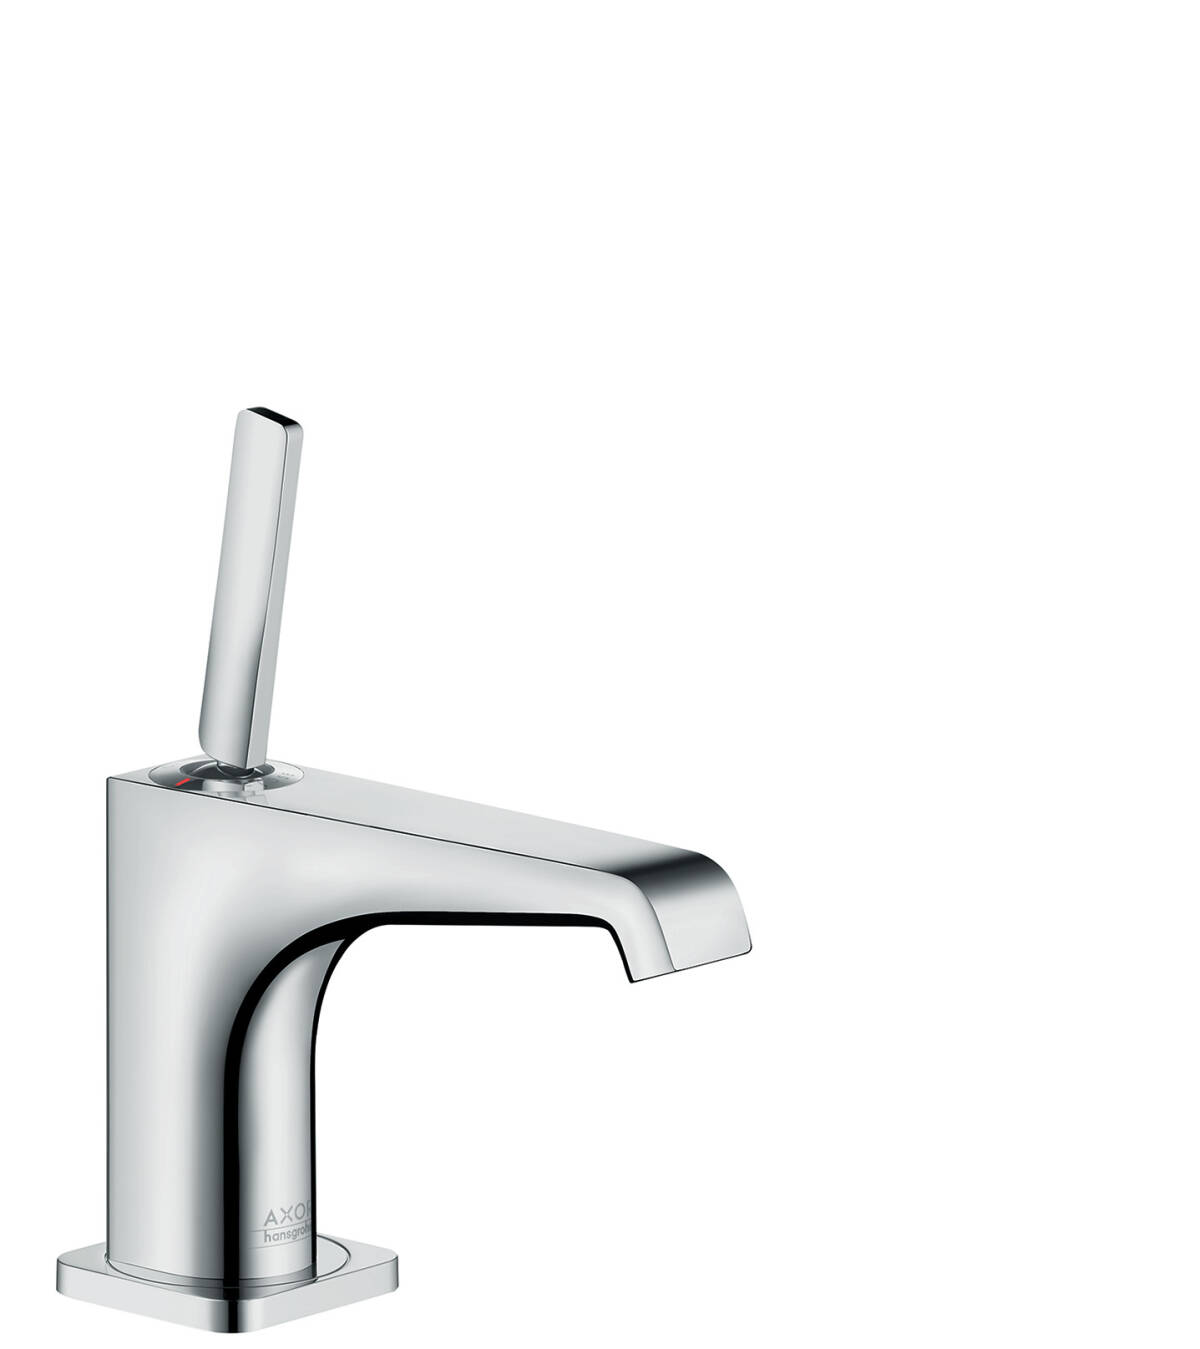 Single lever basin mixer 90 for hand washbasins with waste set, Brushed Bronze, 36102140